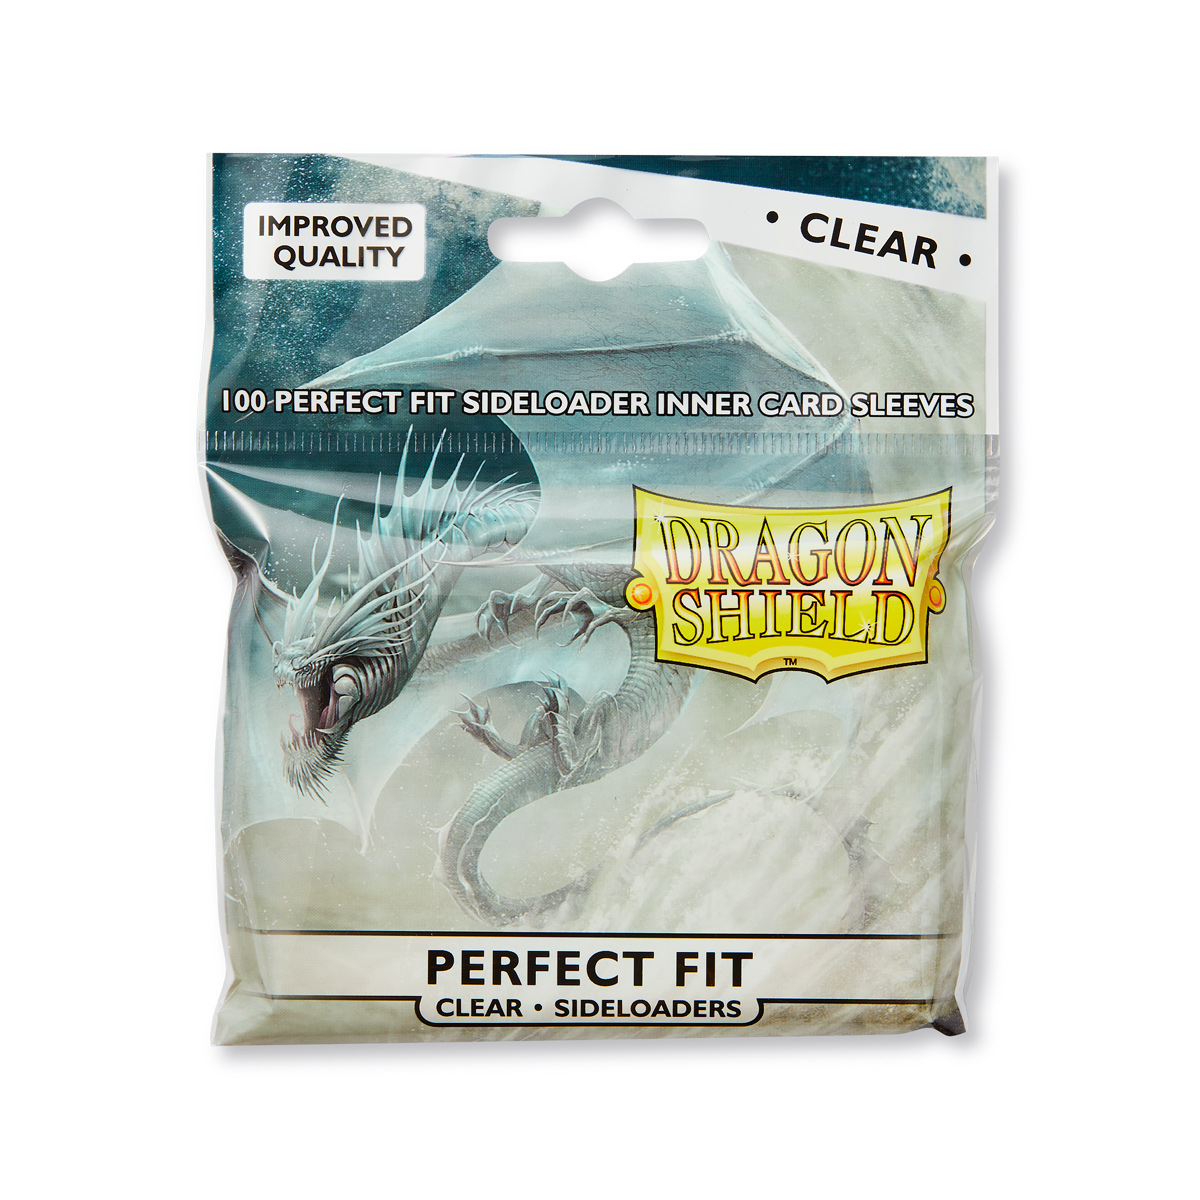 100 Dragon Shield Perfect Fit Sideloader Sleeves - Clear